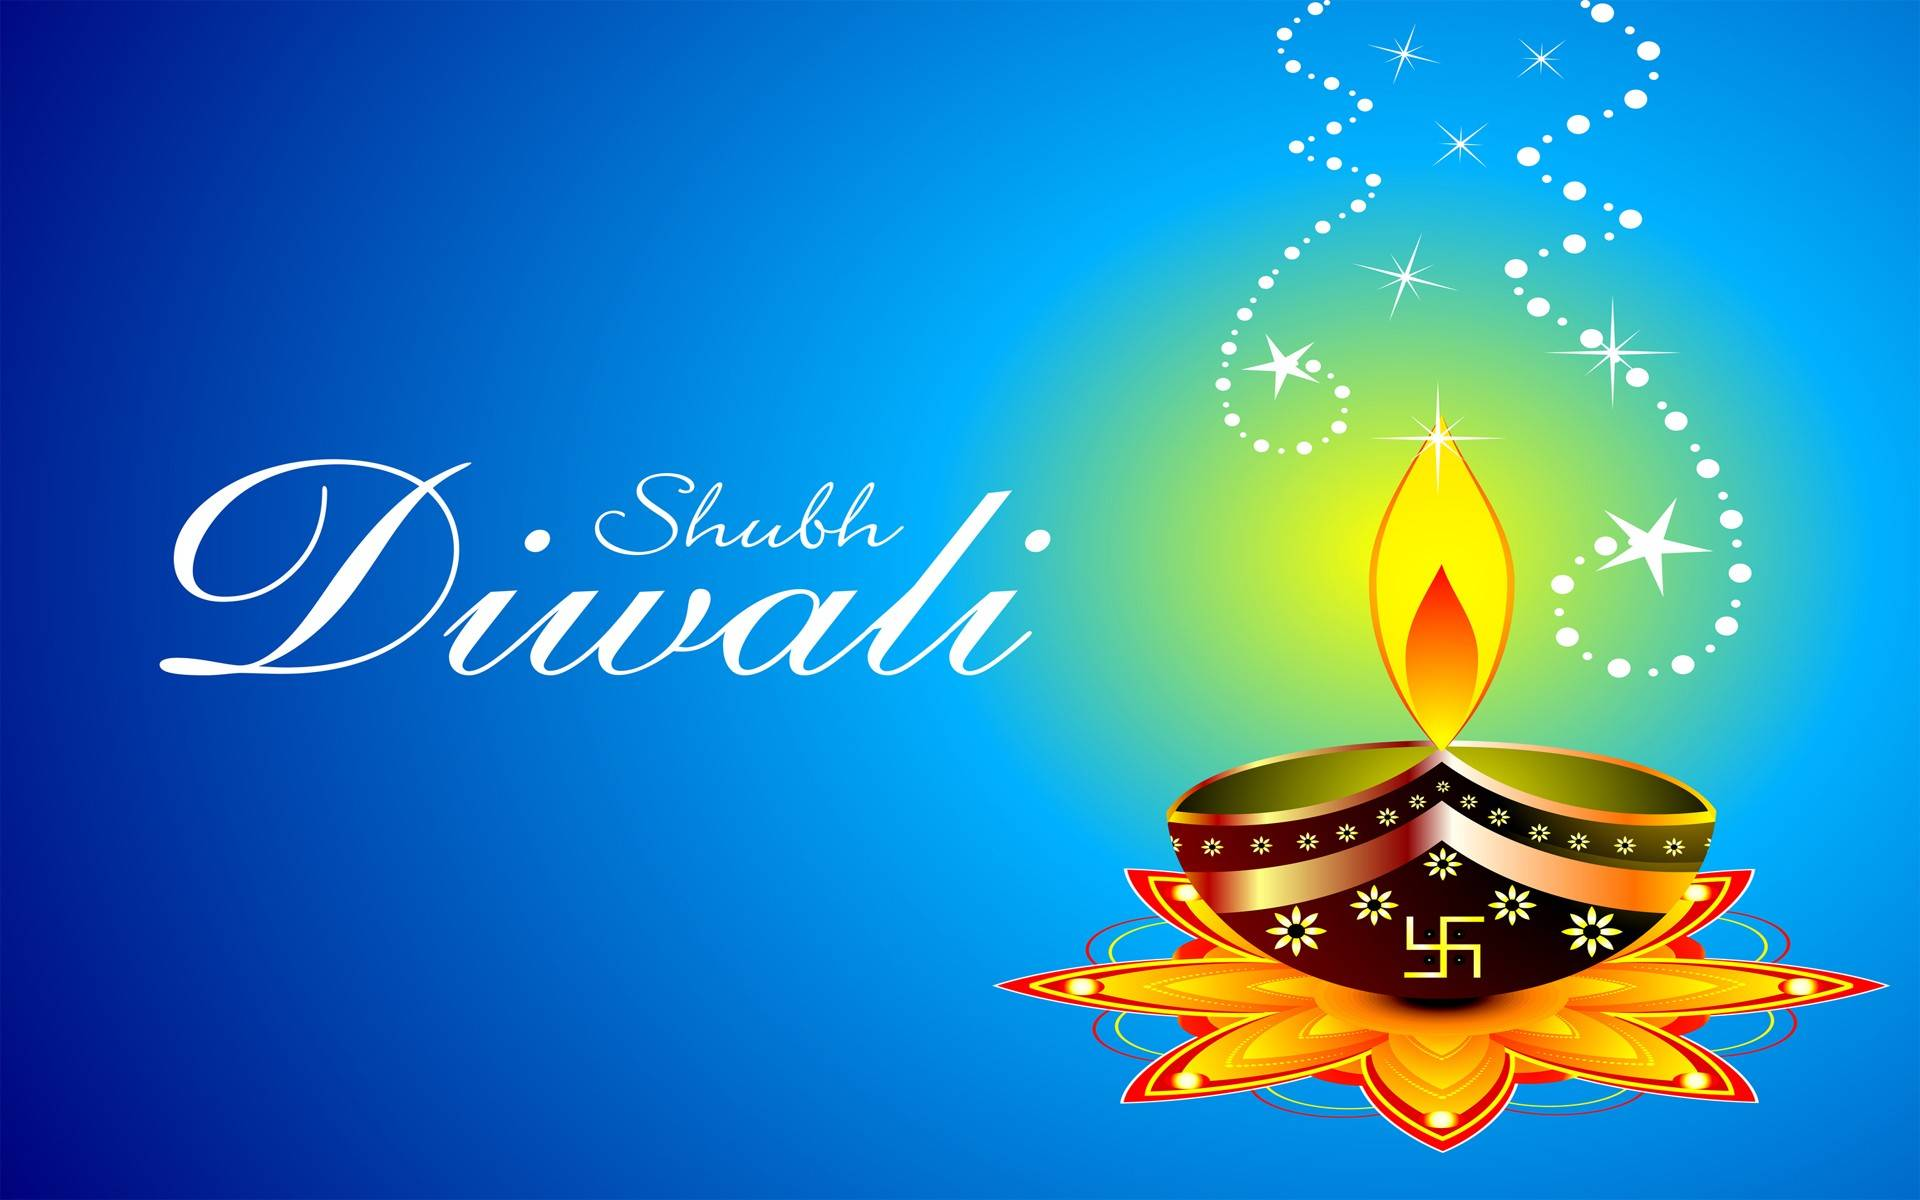 happy diwali 2017 blue wall wallpapers | happy diwali 2017 blue wall